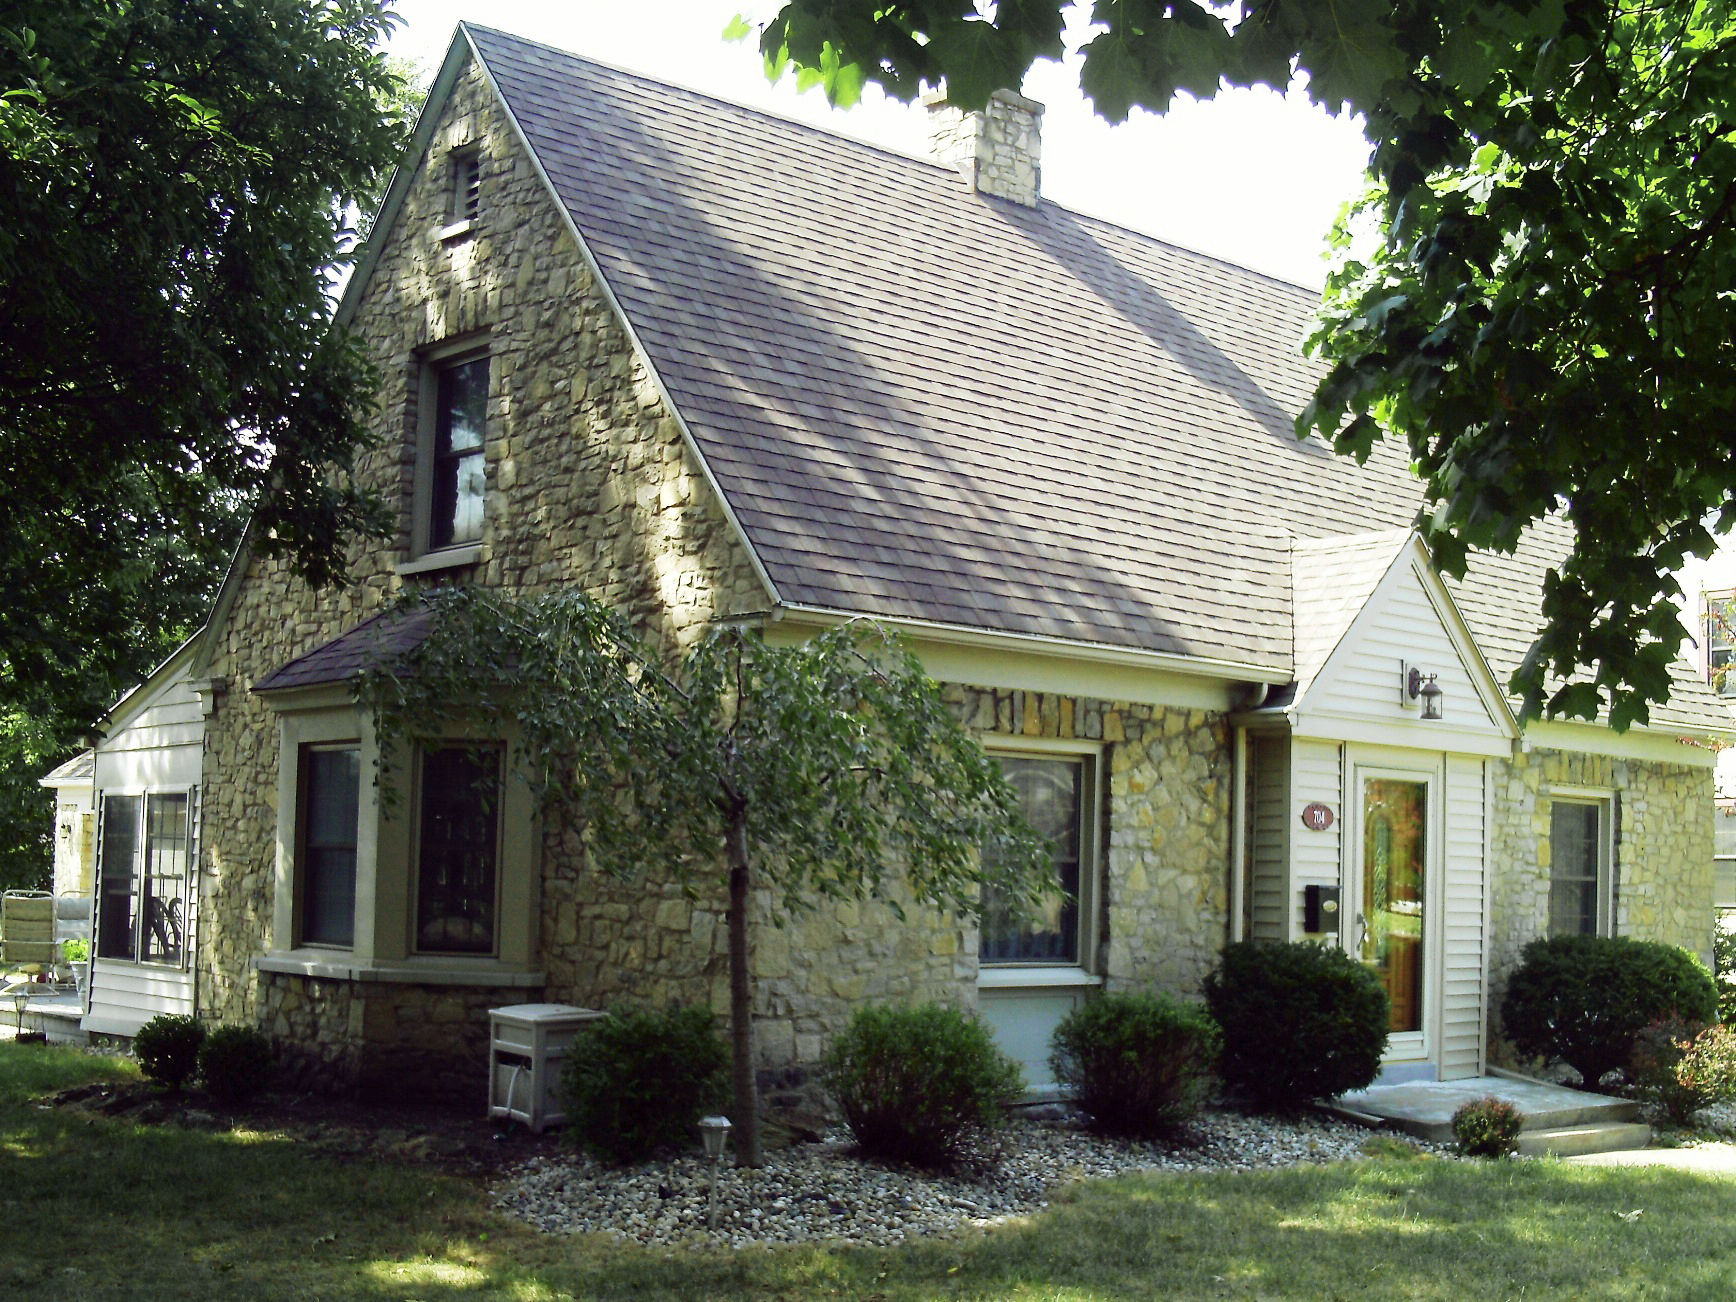 Homes tour to feature old new of neighborhood the blade for Cape cod house